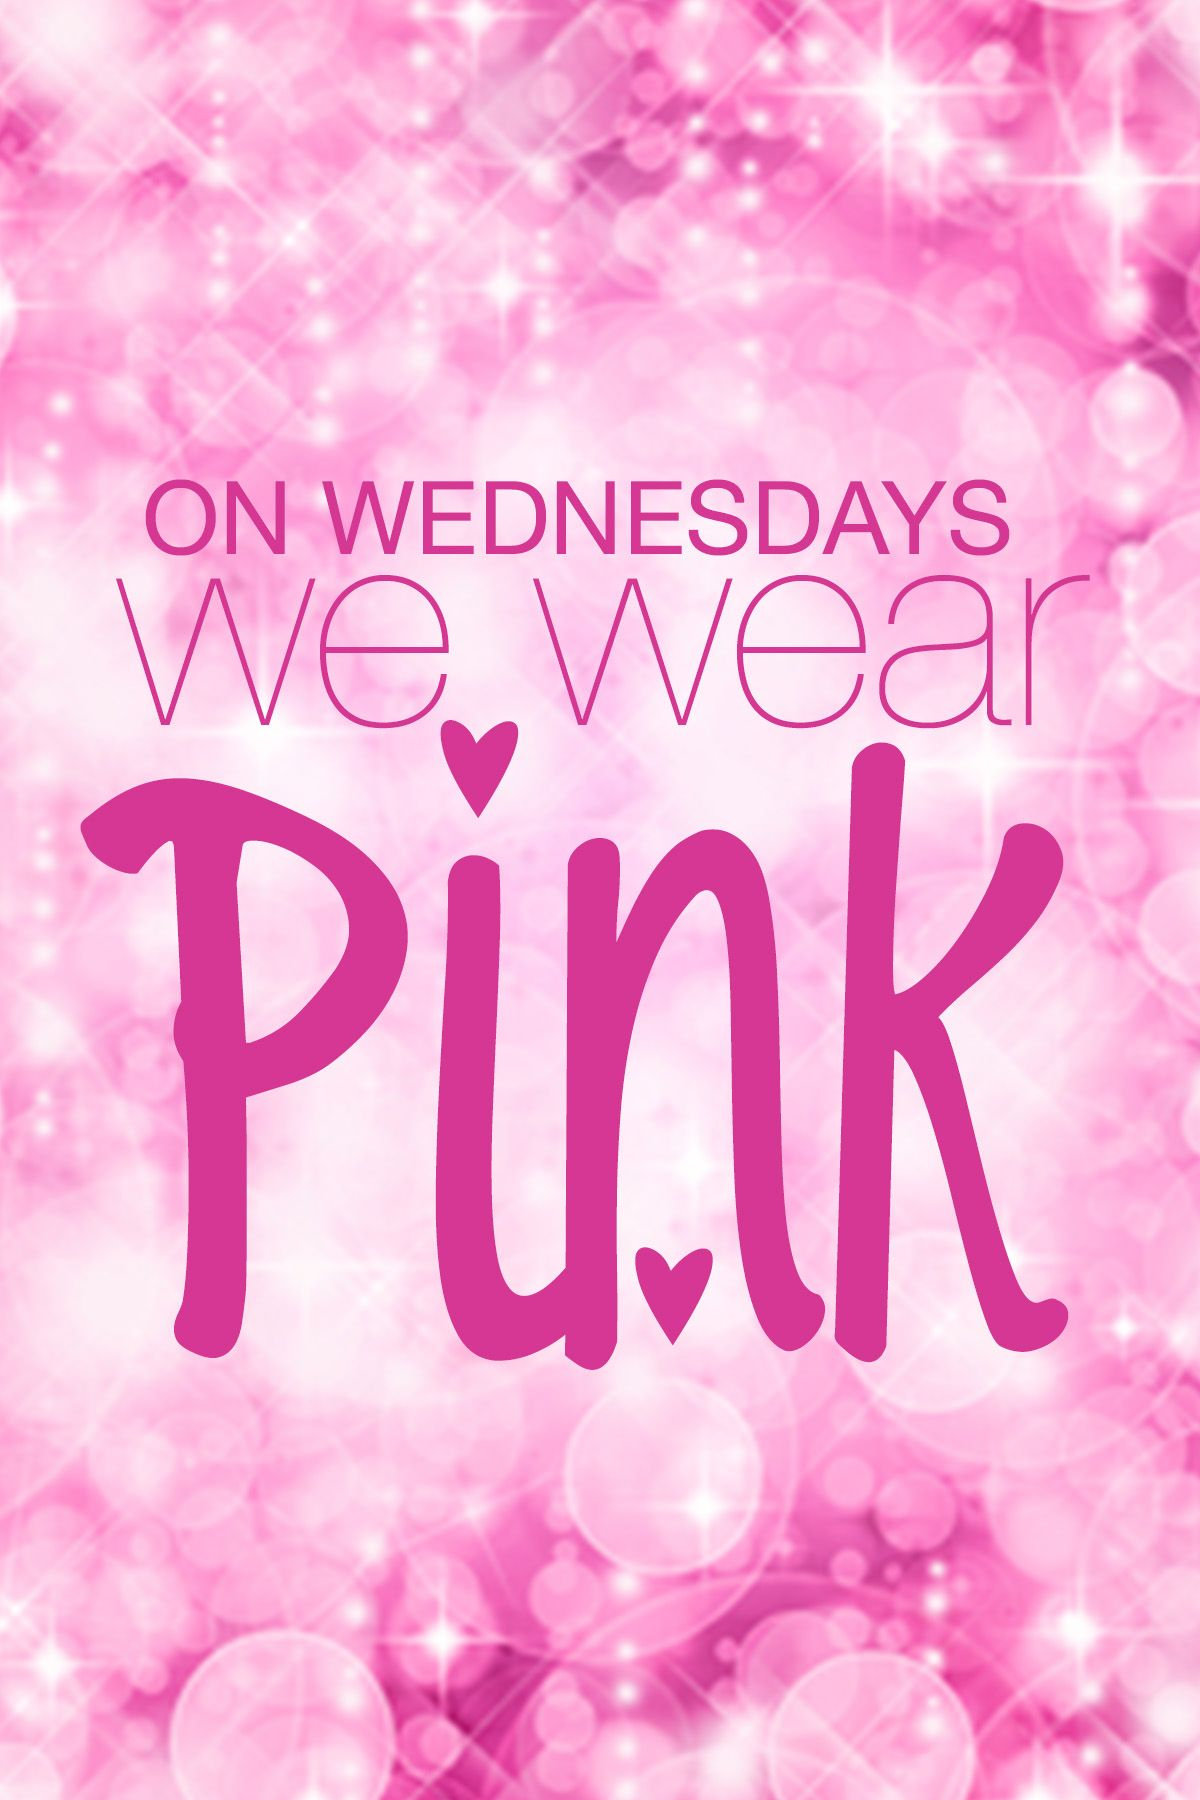 """On Wednesdays, we wear pink!""-- the famous quote from the hilarious movie Mean Girls. #wednesday #meangirls #softpaws www.softpaws.com"